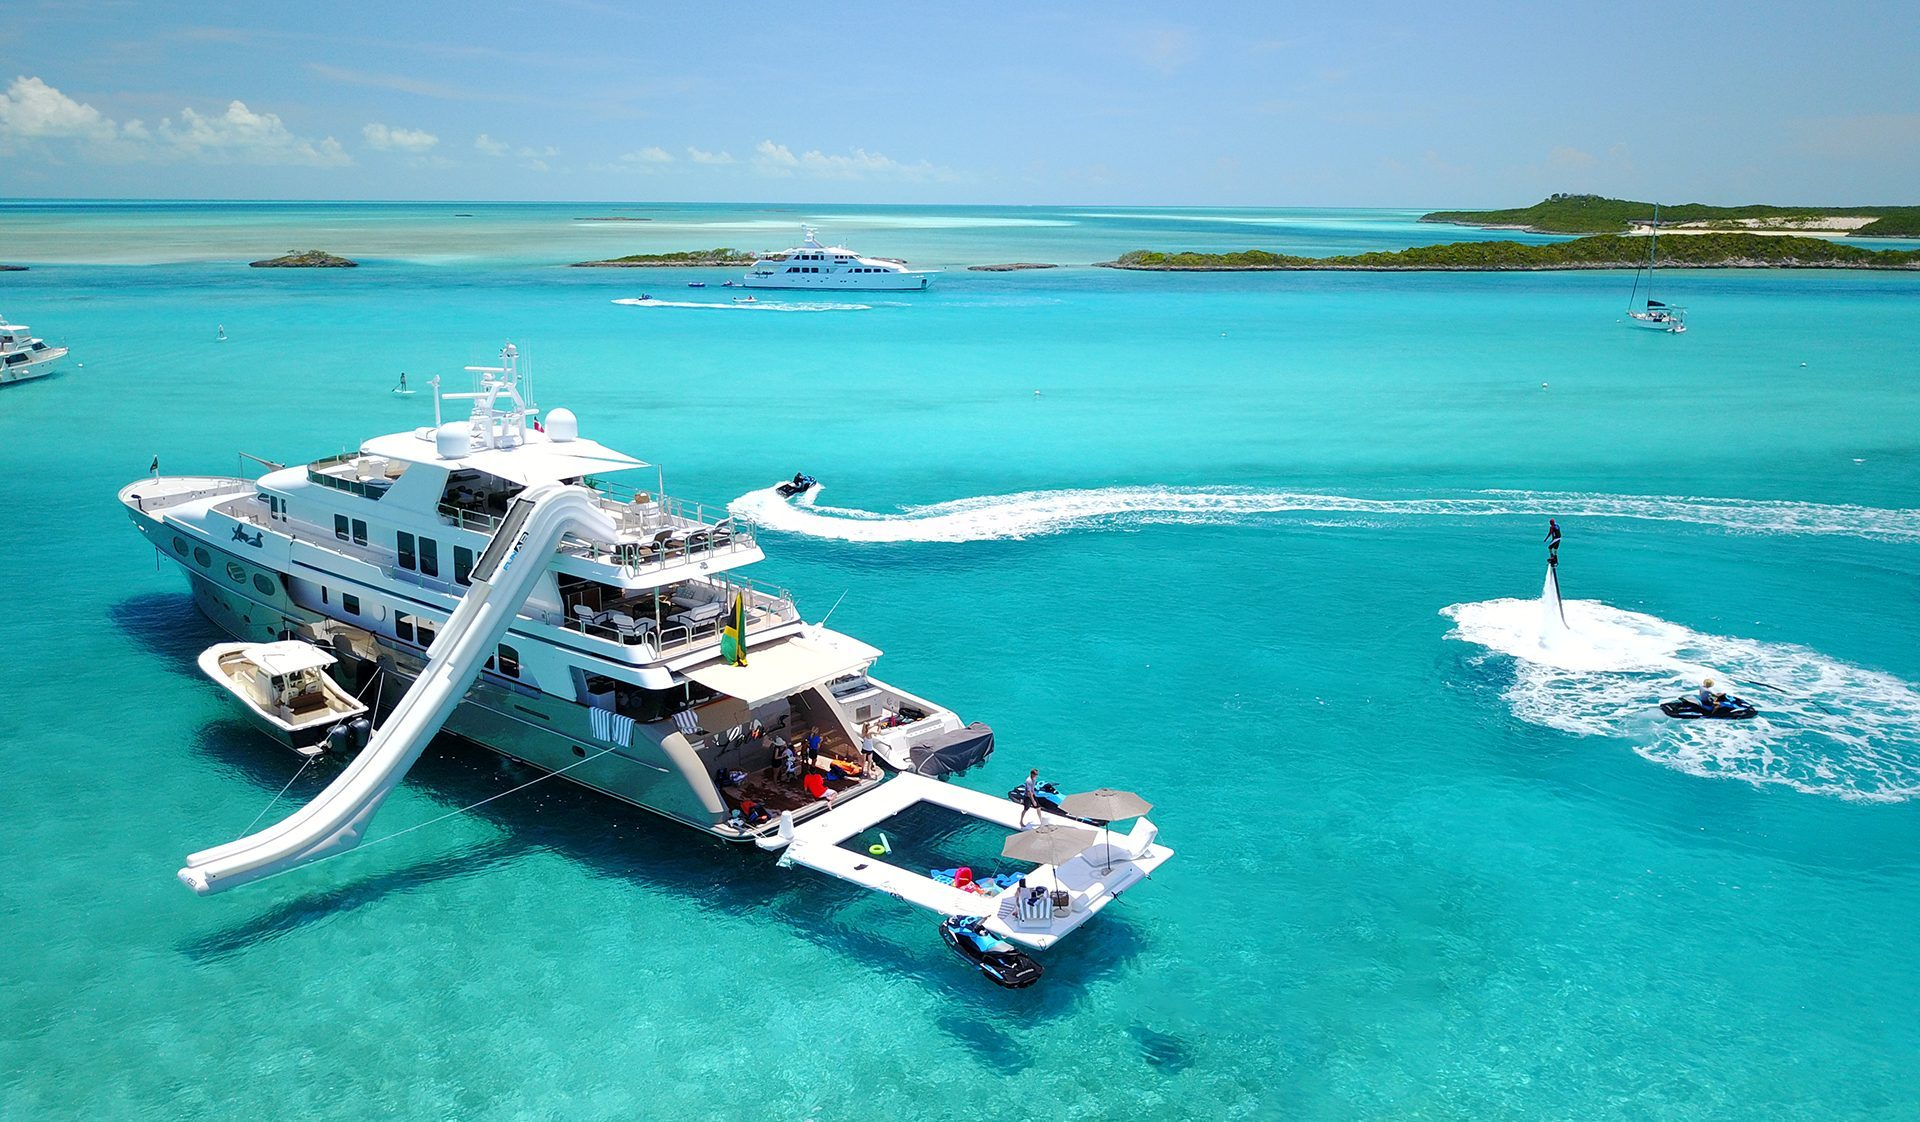 Beach Club Sea Pool, Yacht Slide and Superyacht Wave Chairs on MY Loon